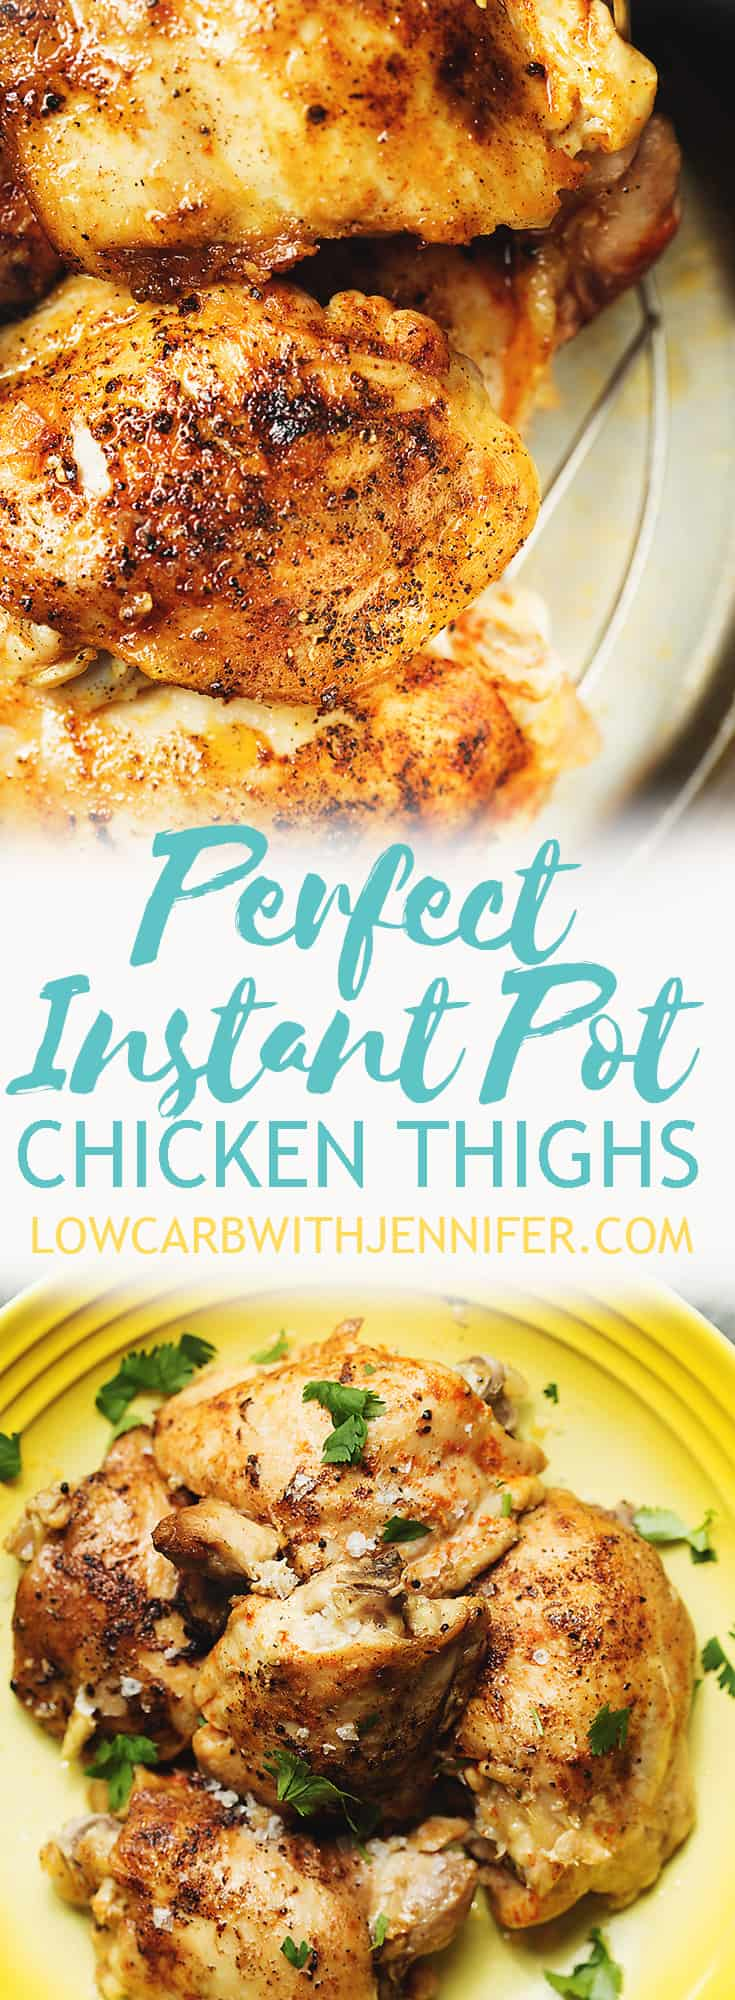 instant pot chicken thighs and keto chicken thighs pinterest pin